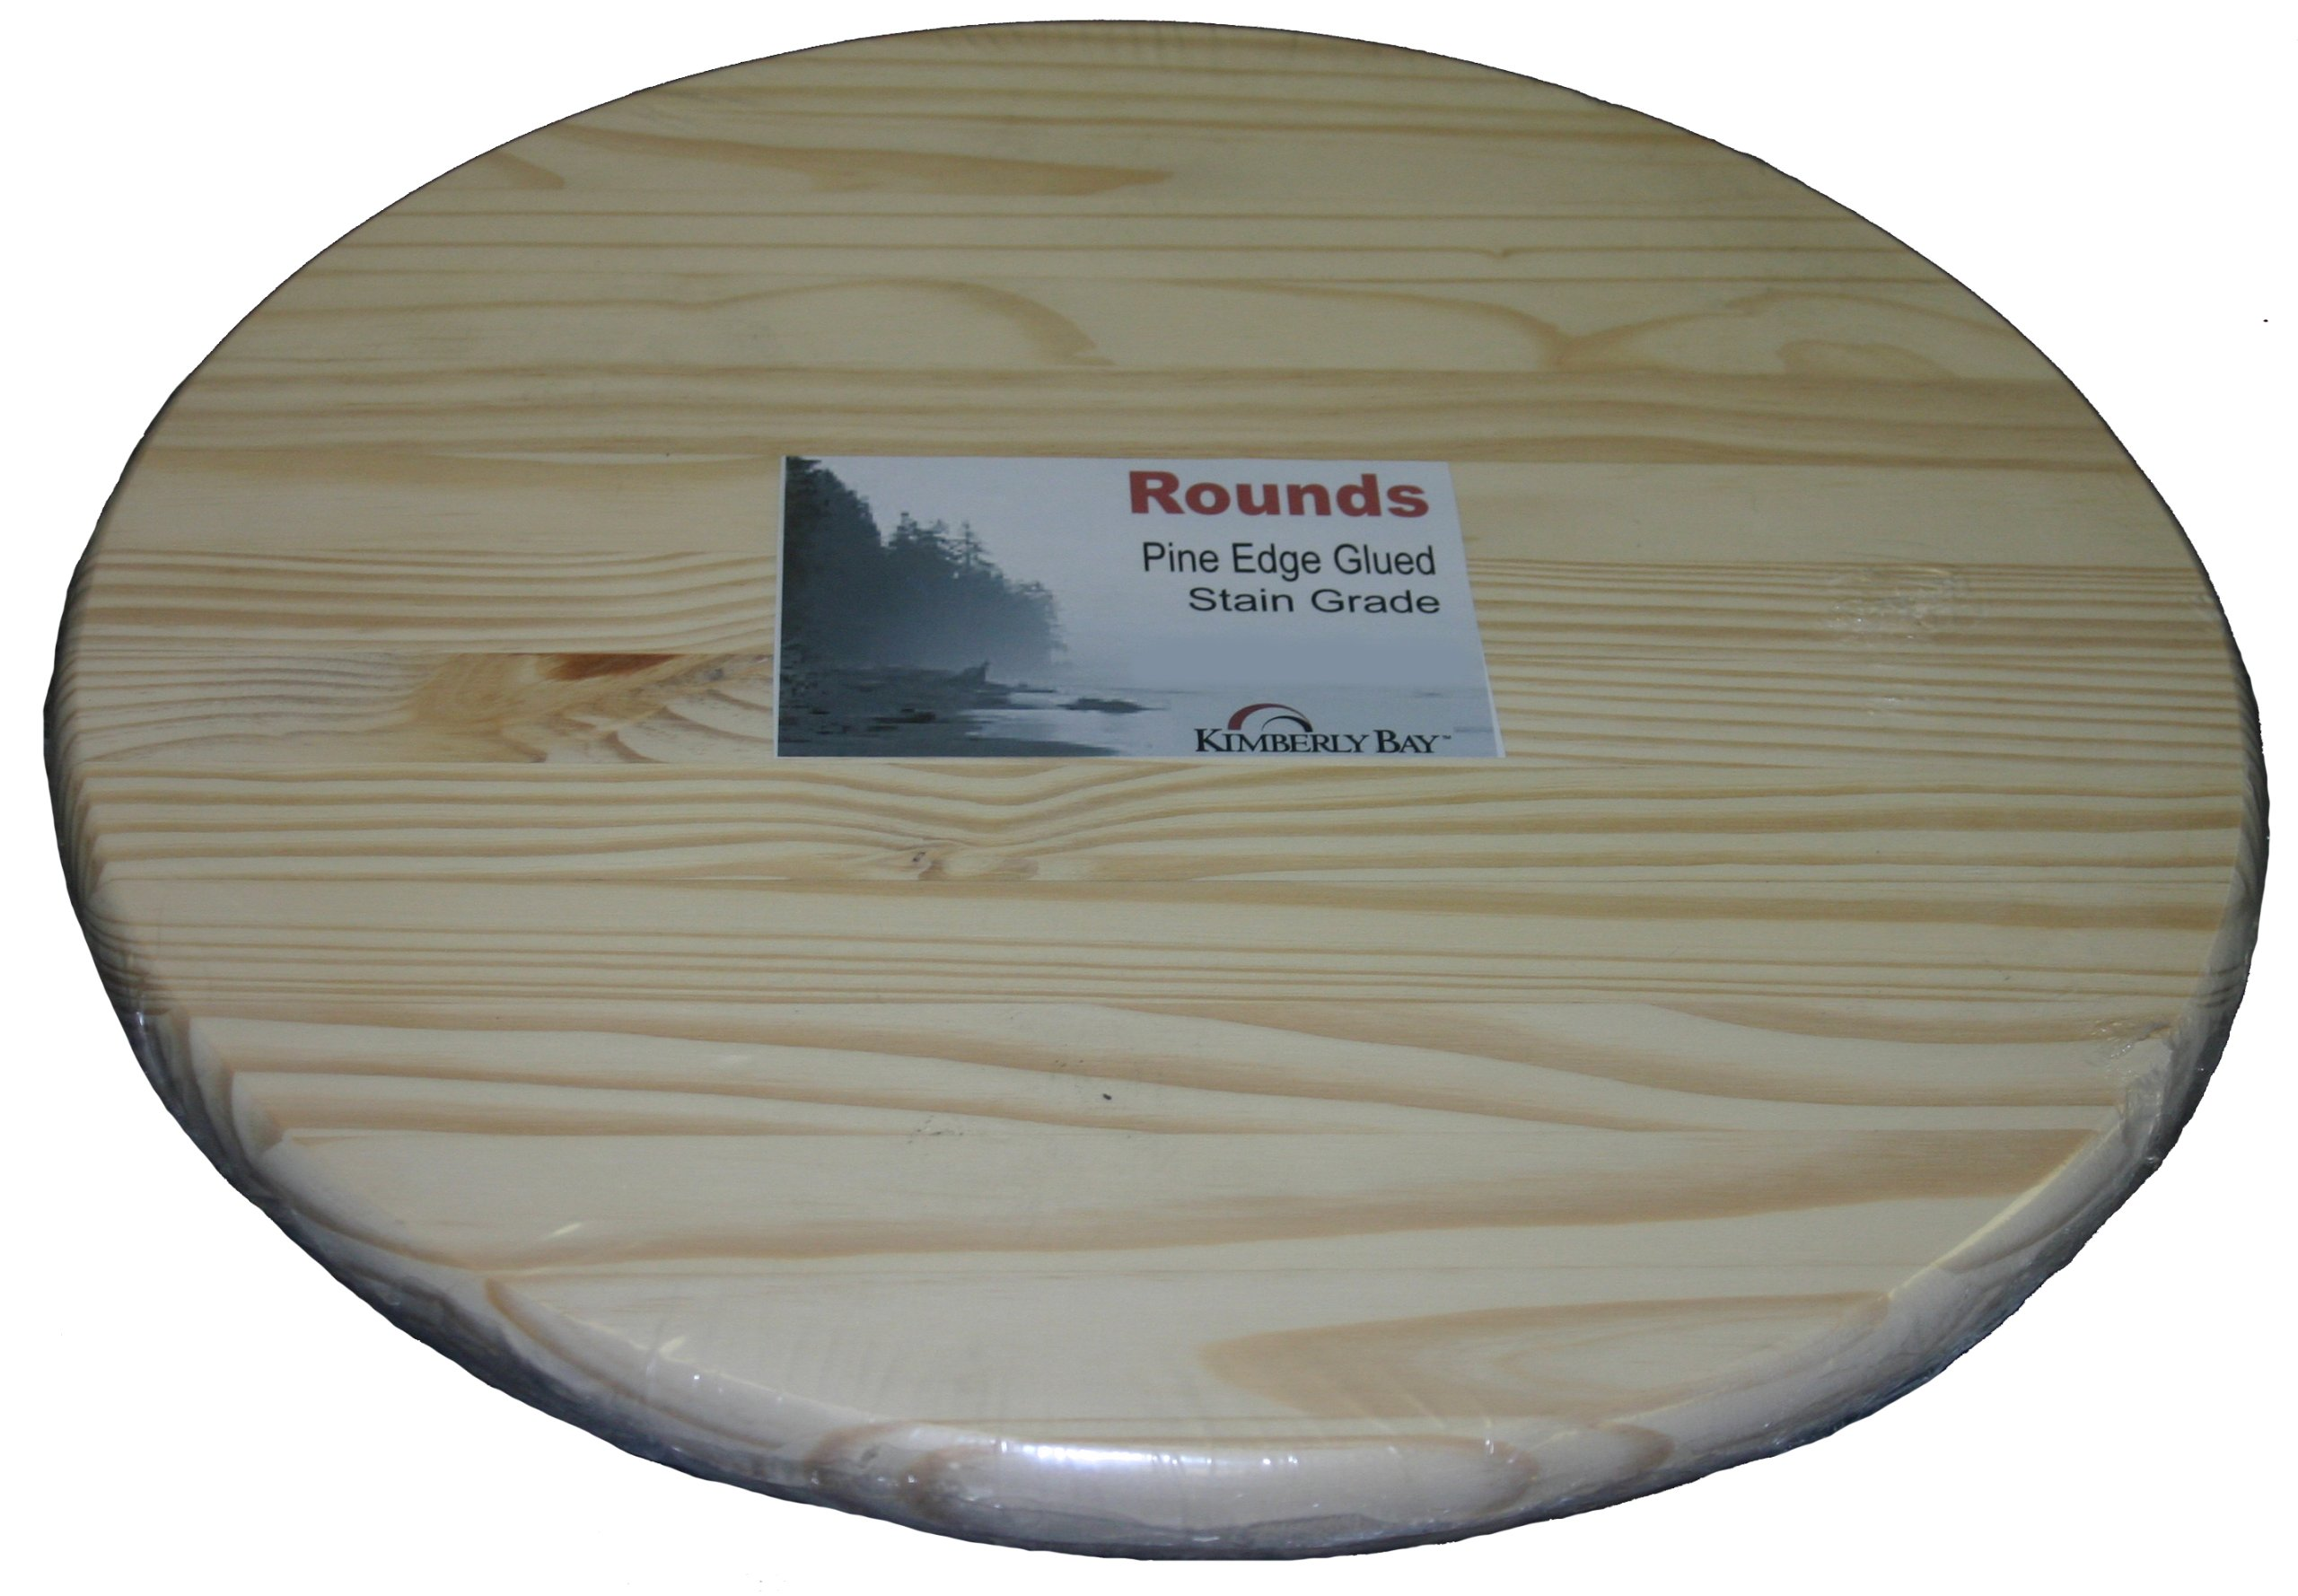 Edge Glued Pine Round by Kimberly Bay TM